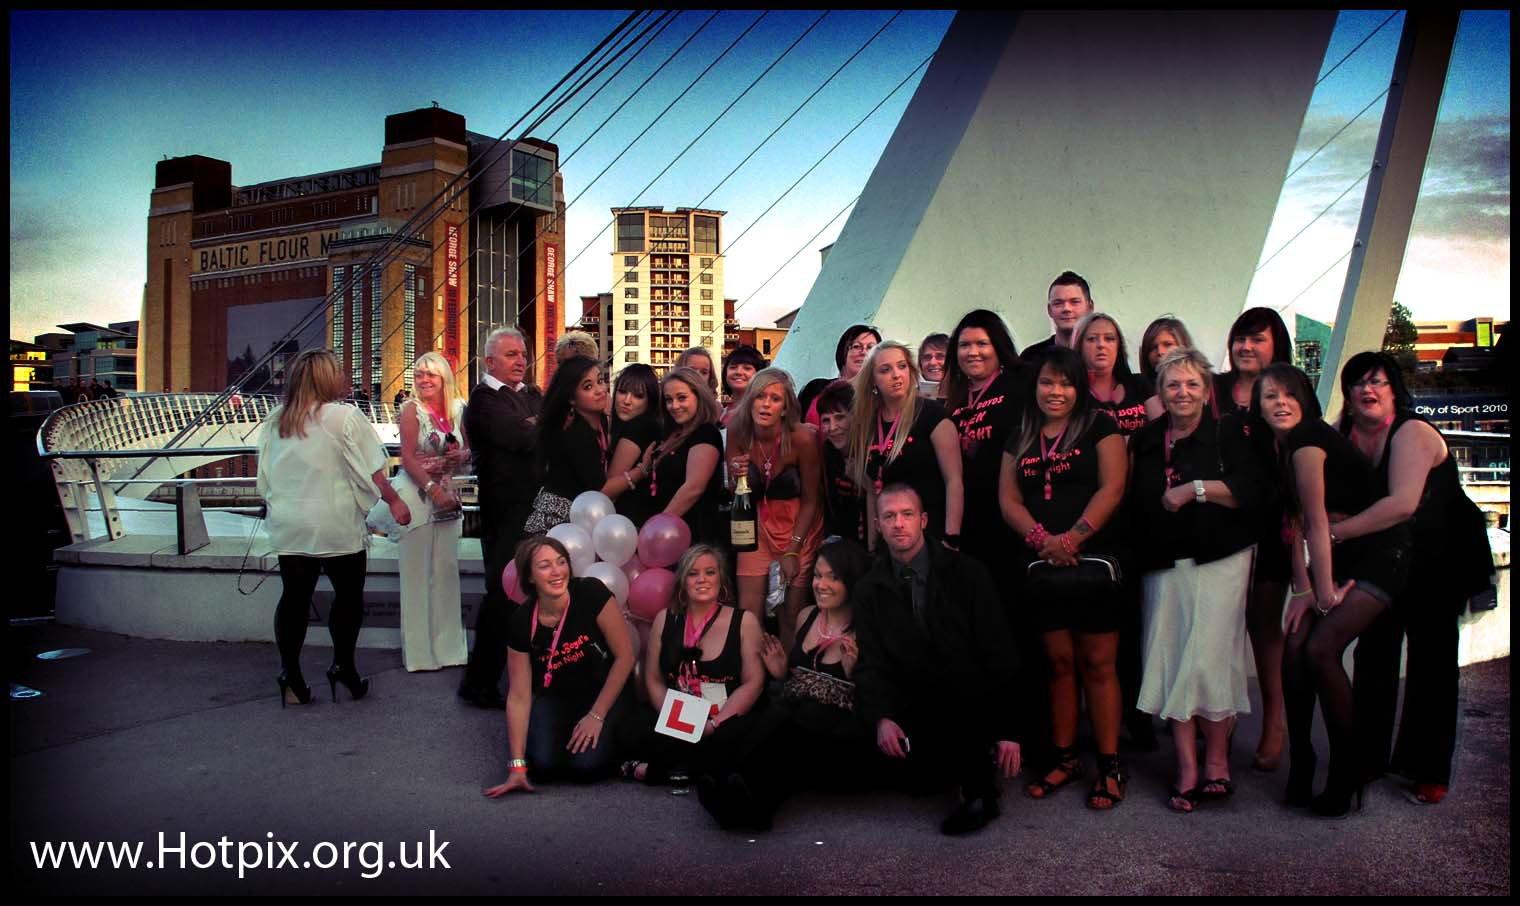 Newcastle,toon,town,upon,tyne,newcastle-upon-tyne,tony,smith,hotpix,tonysmith,tonysmithhotpix,baltic,flour,mill,hen,night,stag,stocking,england,sex,tradition,traditional,pink,lady,sexy,black,tight,tights,short,skirt,skirts,bachelorette,party,girl,girls,females,female,gateshead,river,bridges,bridge,HDR